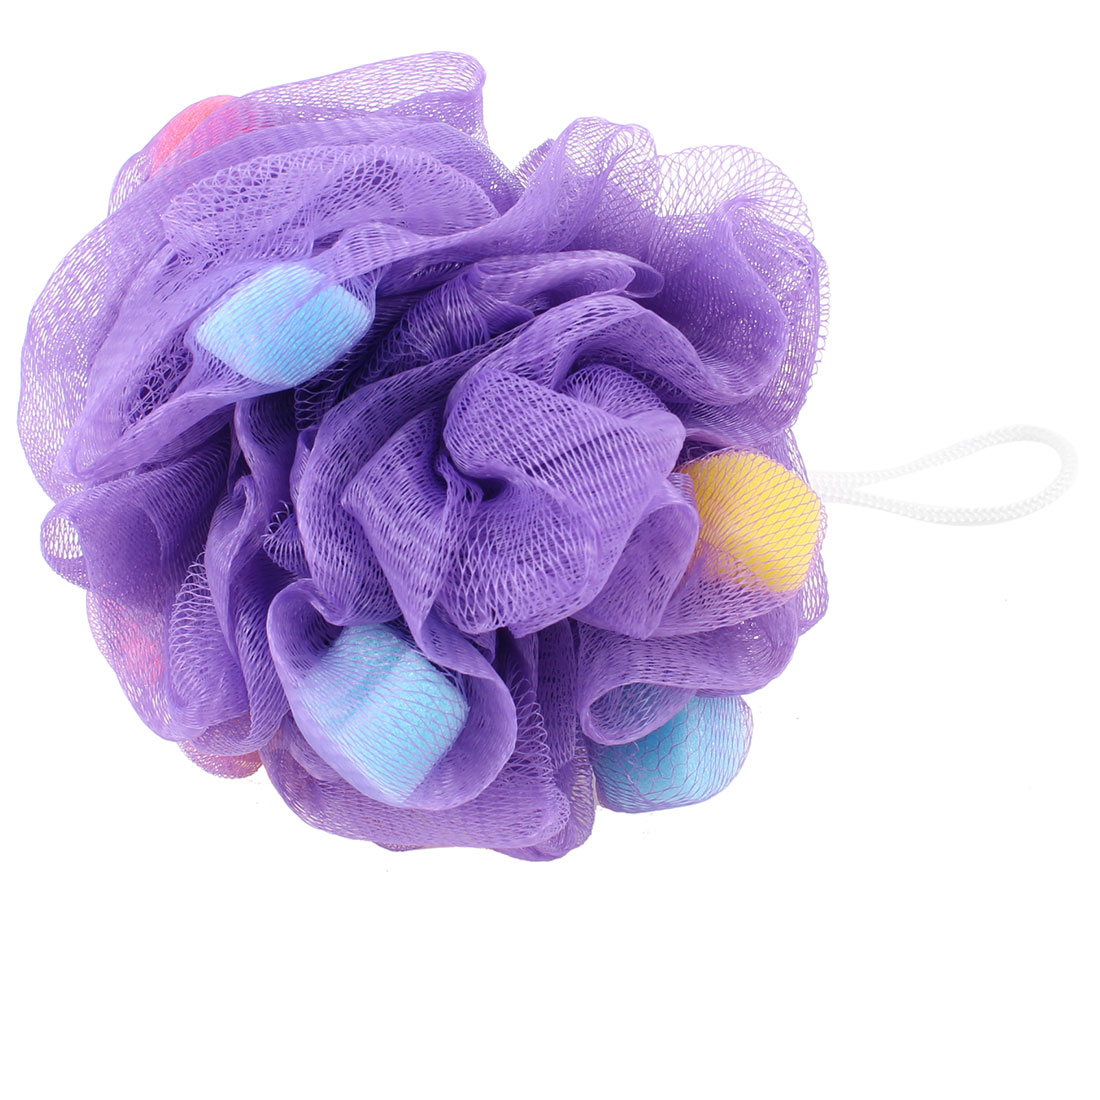 Bathing Blue Pink Heart Shape Sponge Bath Shower Pouf Mesh Net Ball Purple